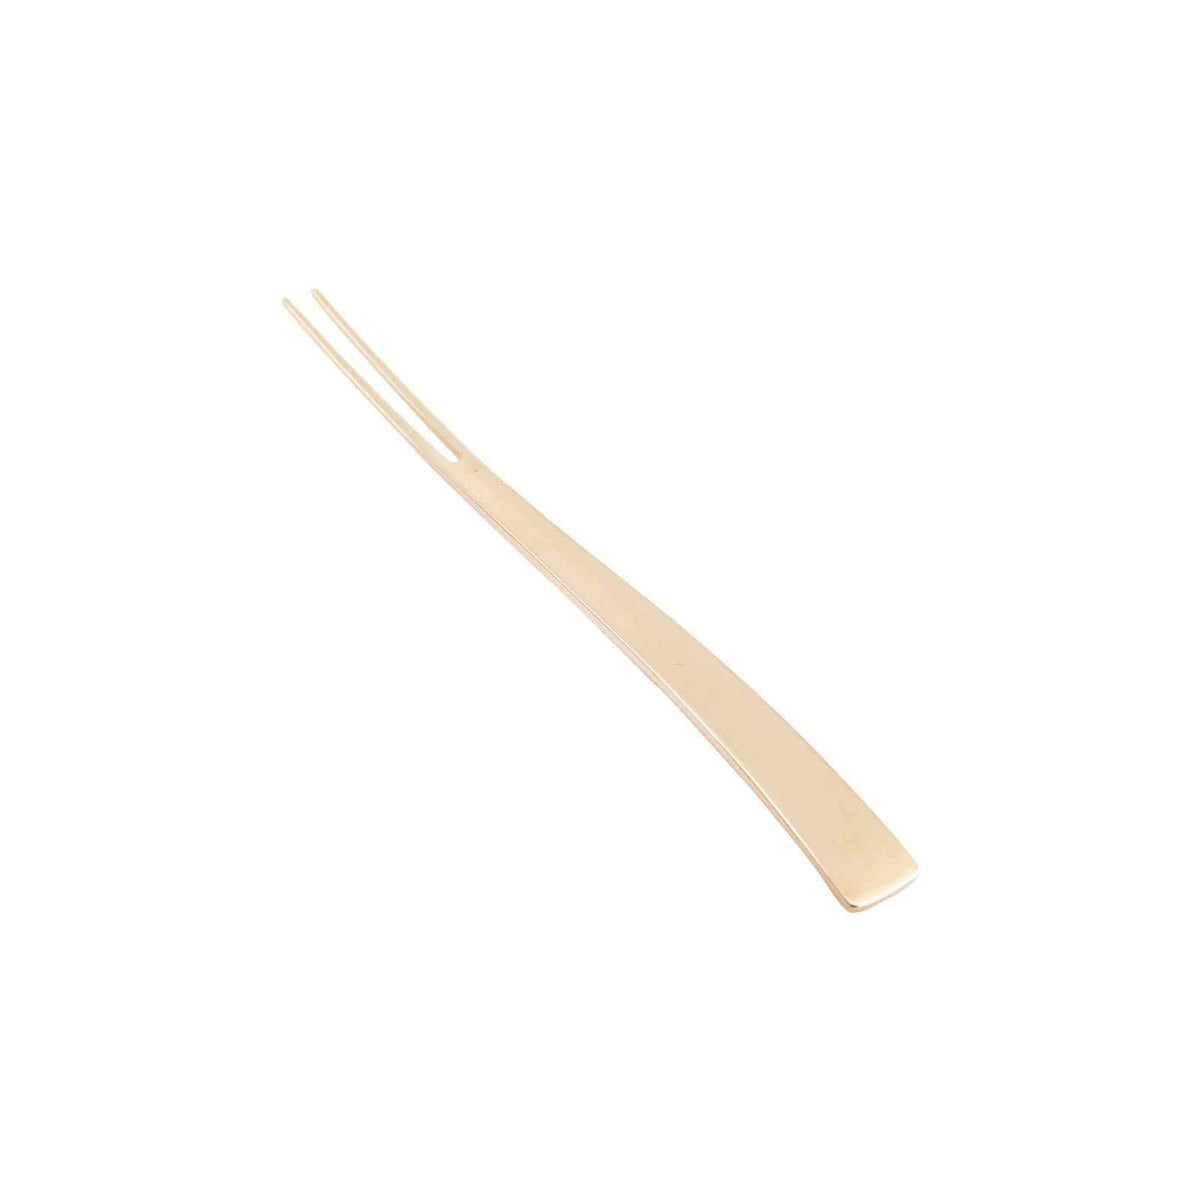 Tsubame Shinko URBAN Stainless Steel Pastry Fork 13.2cm (2 Colours) Pink Gold Loose Cutlery